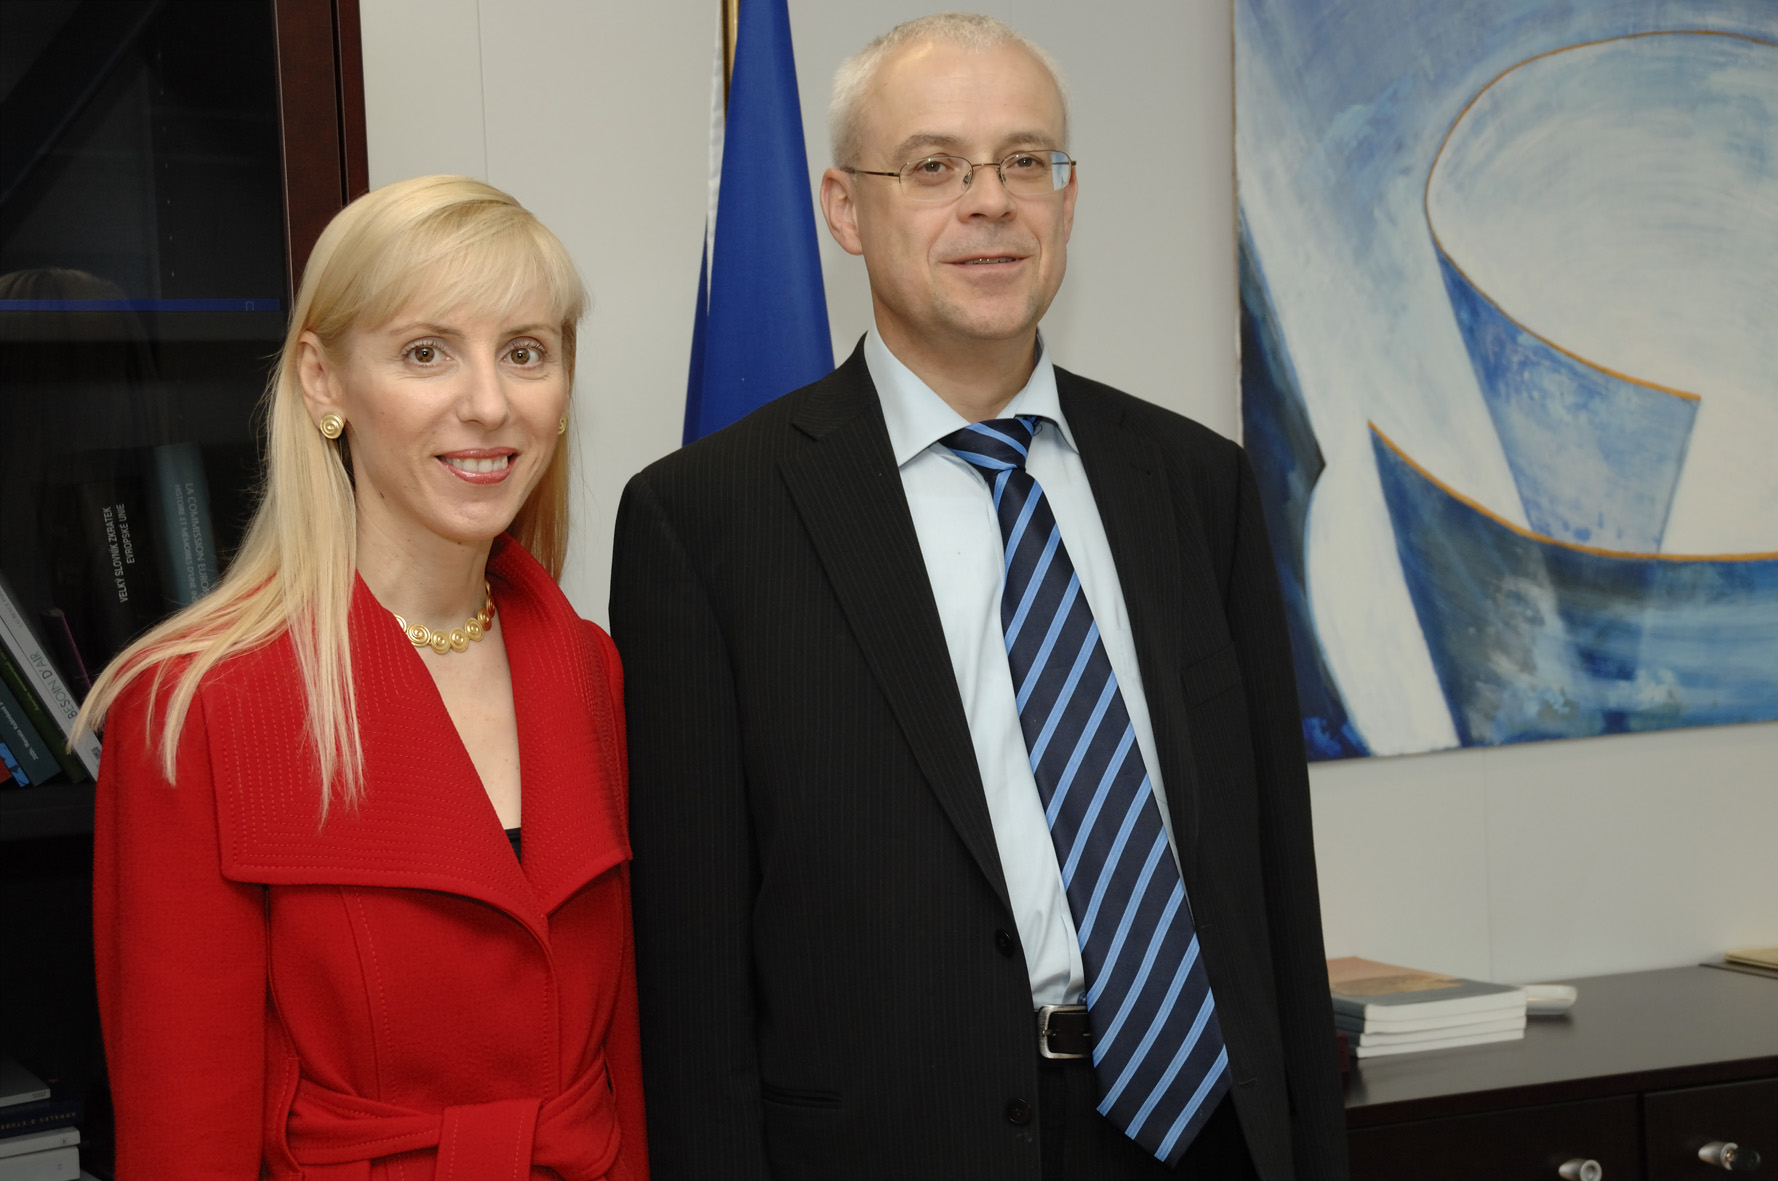 Visit by Martha Theodorou, Head of Department at the Greek Economic and Social Council, to the EC